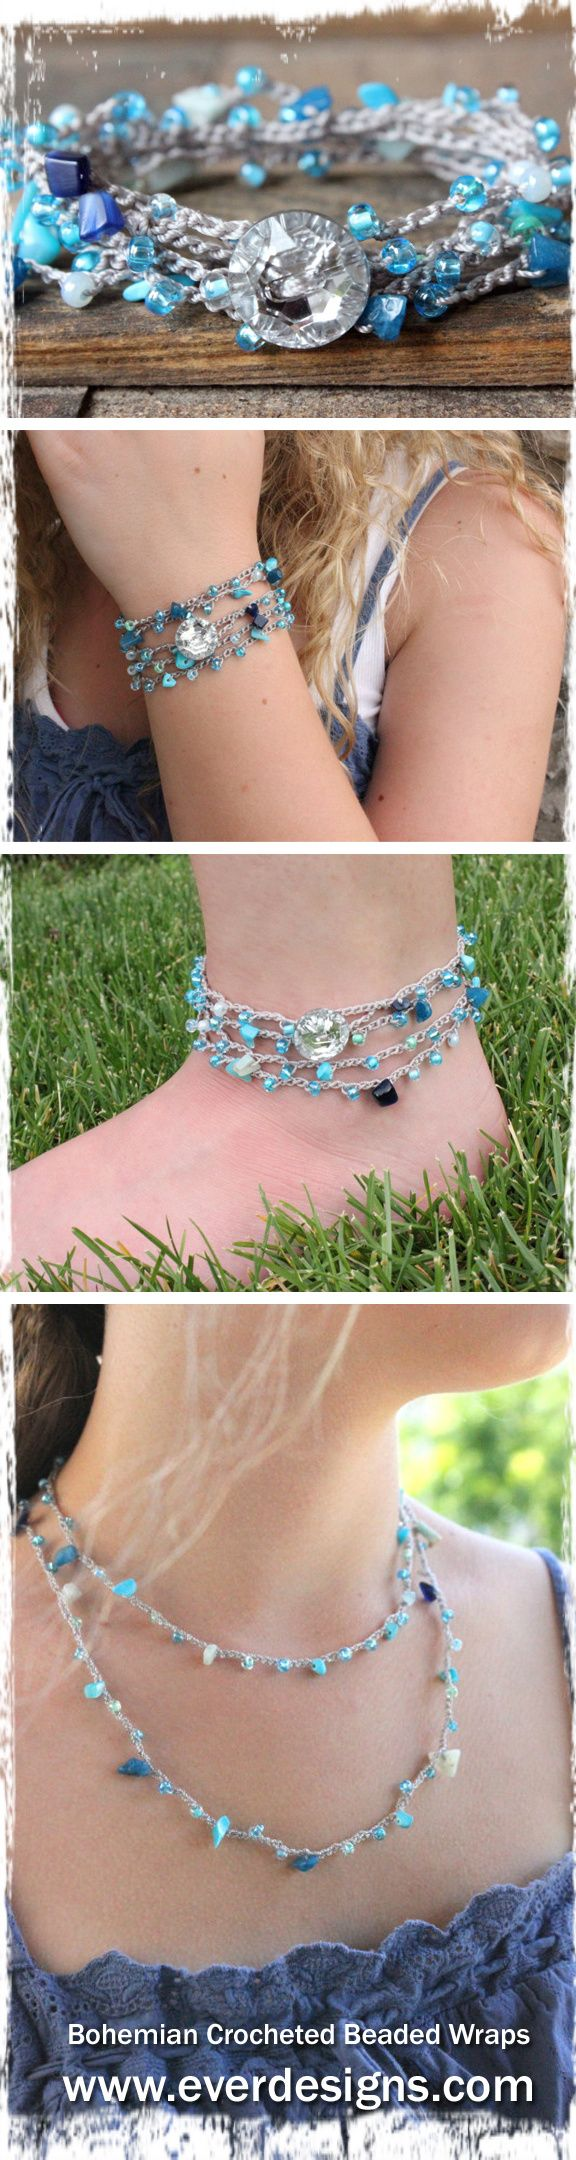 "Bohemian crocheted wrap by Ever Designs ~ Necklace, Bracelet and Anklet all in one ~ ""Mermaid""  #bohochic #jewelry #summer"